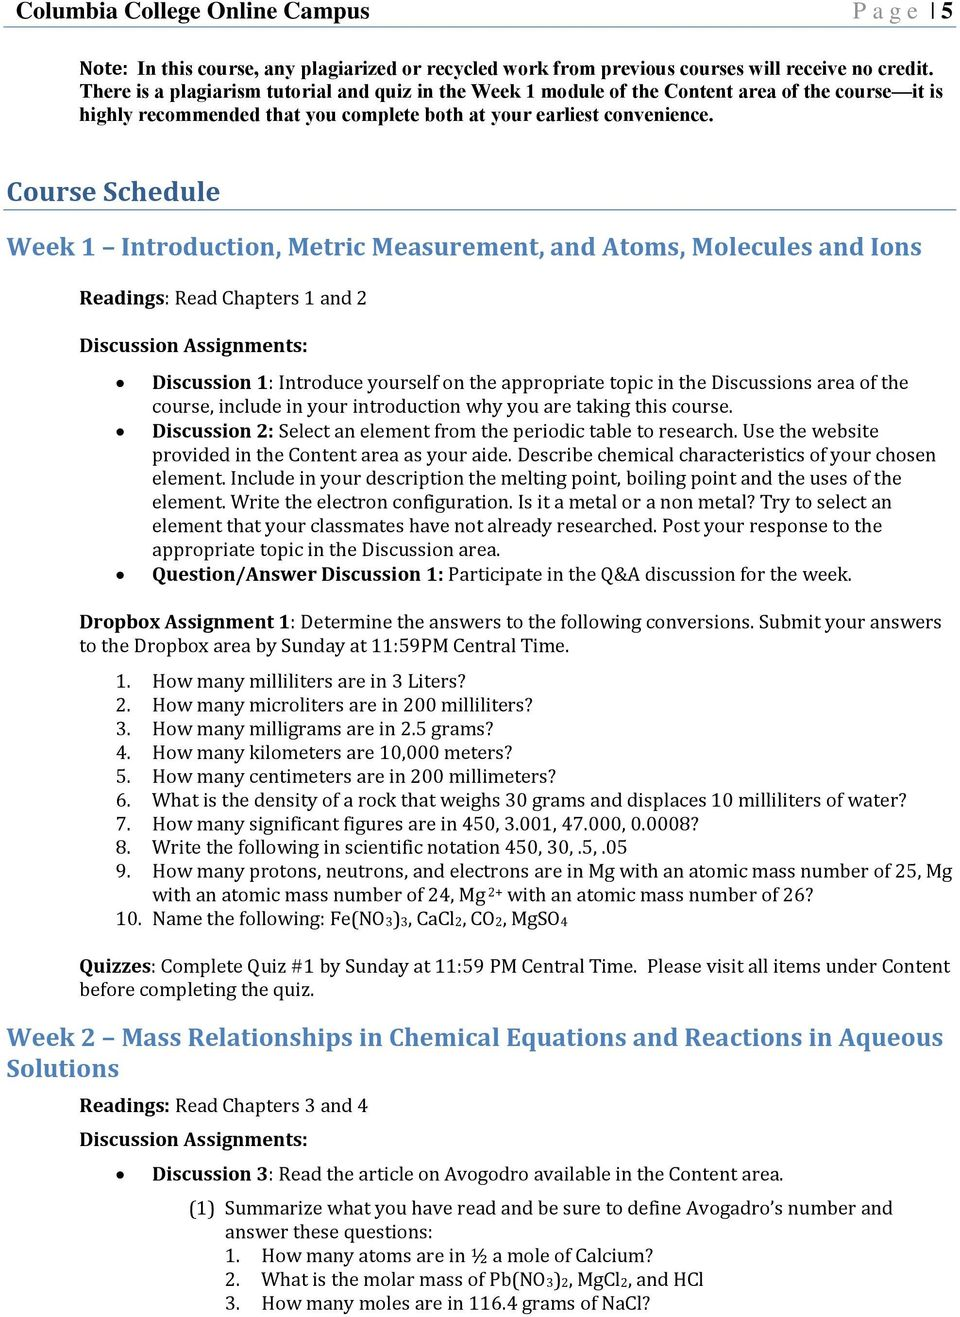 Course Schedule Week 1 Introduction, Metric Measurement, and Atoms, Molecules and Ions Readings: Read Chapters 1 and 2 Discussion Assignments: Discussion 1: Introduce yourself on the appropriate